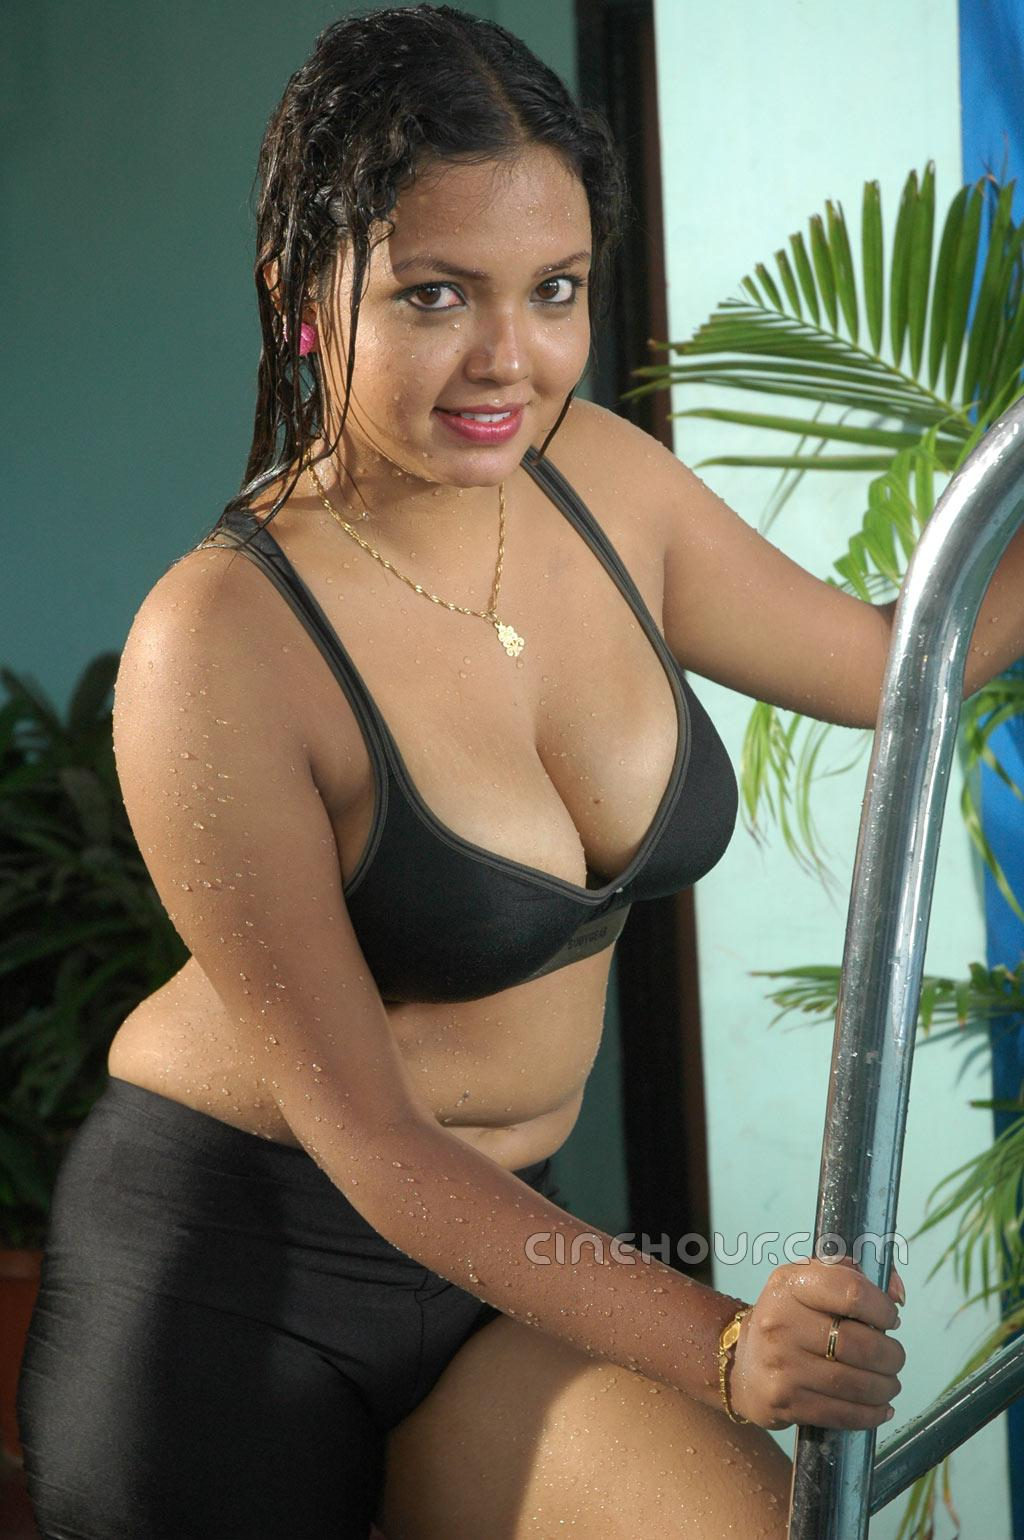 ELIZA: Tamil womens hot photos